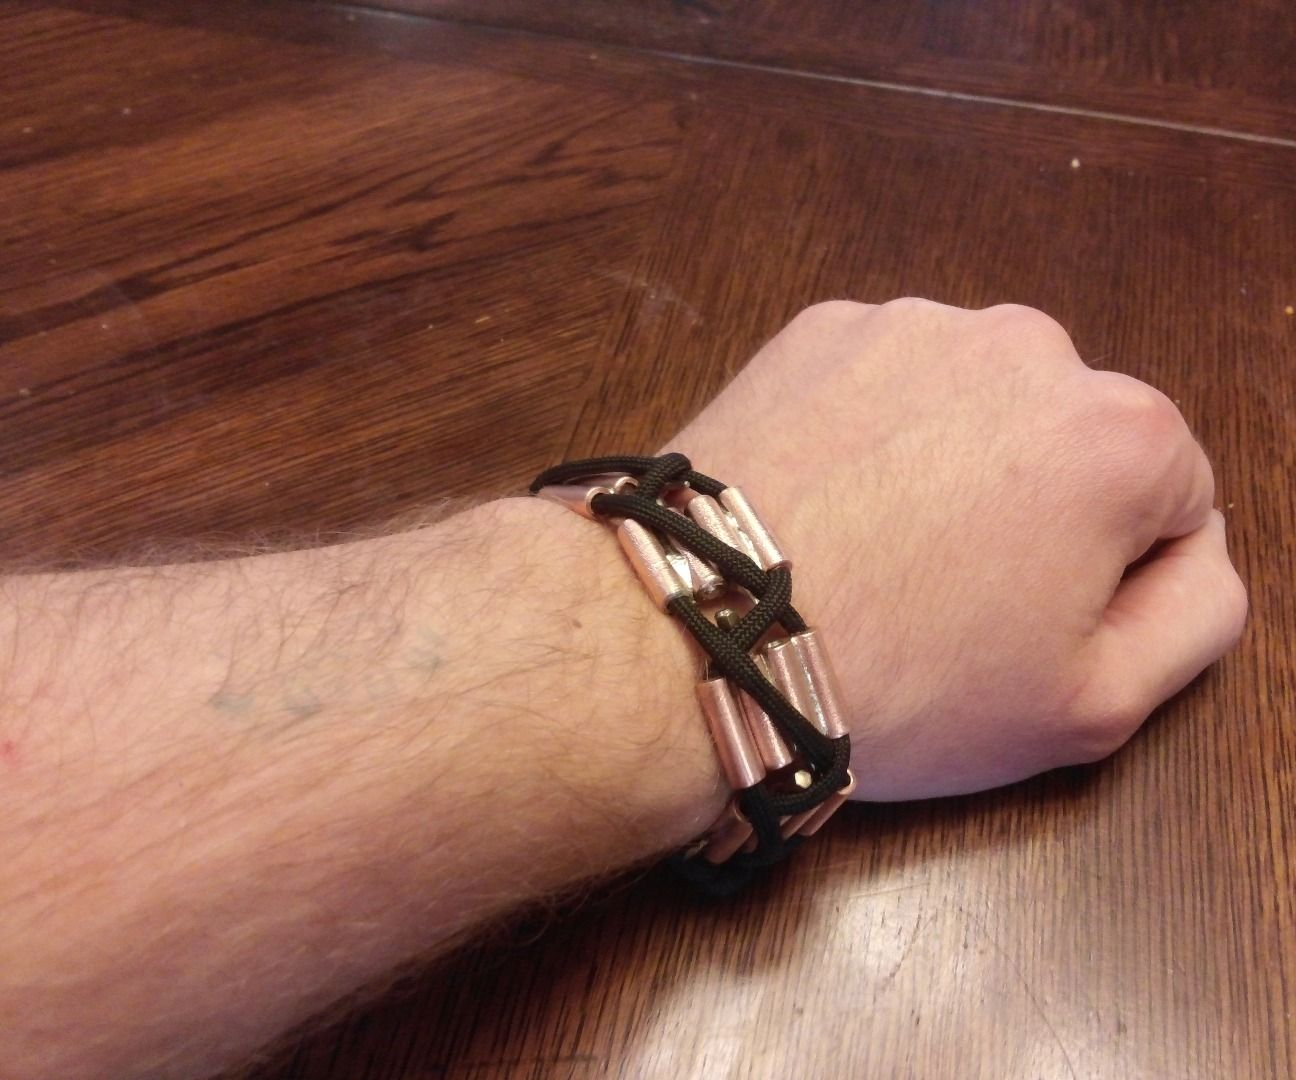 Wrist Multi-Tool of Copper and Paracord